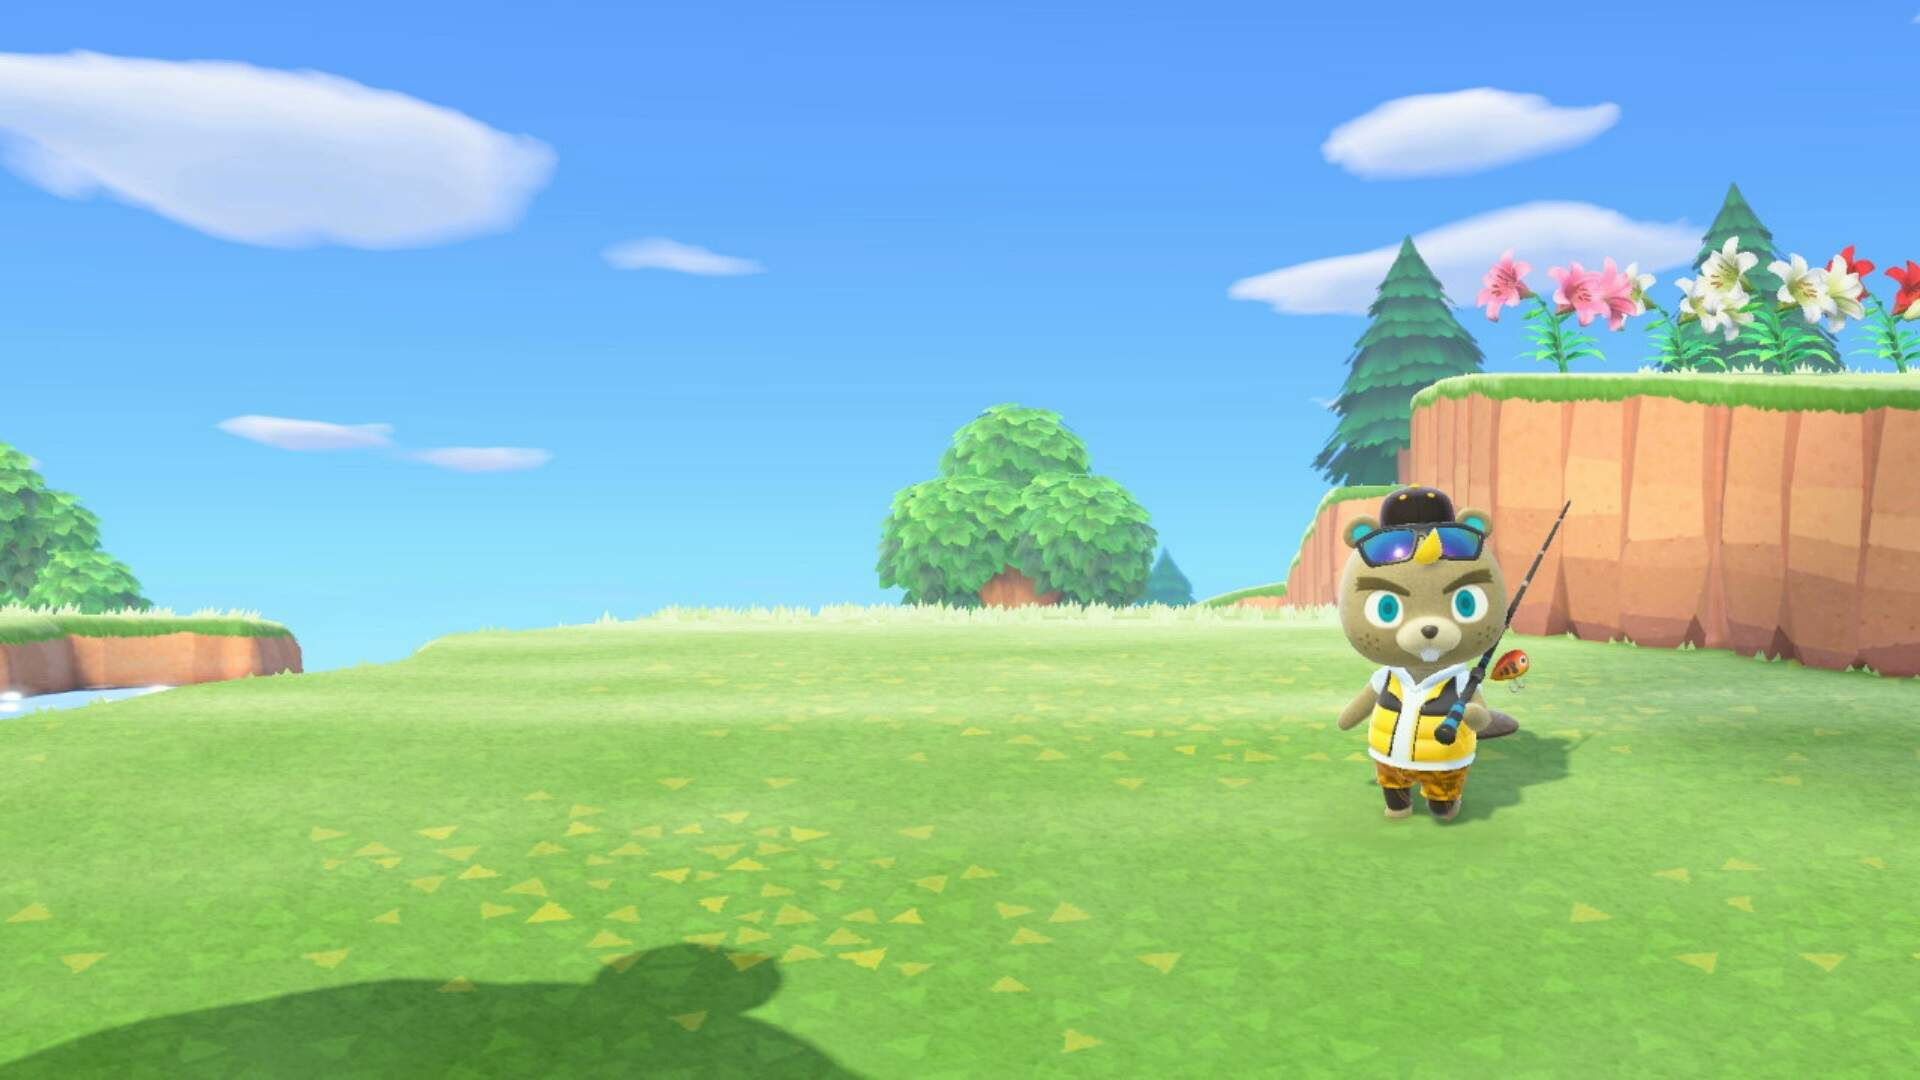 Animal Crossing New Horizons: When Does CJ Come to My Island?